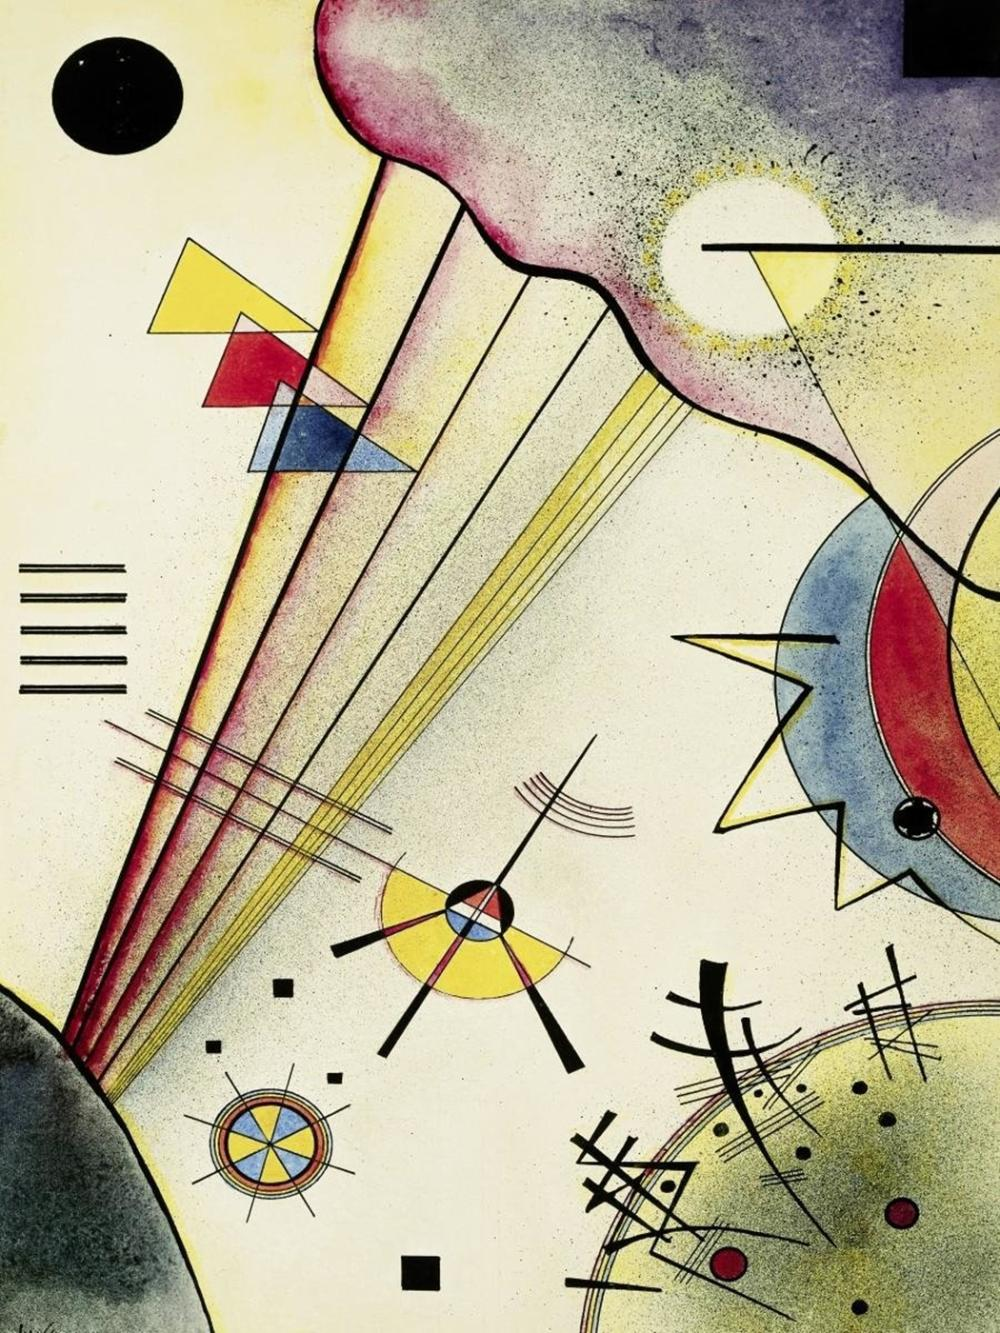 WASSILY KANDINSKY CLEAR CONNECTION